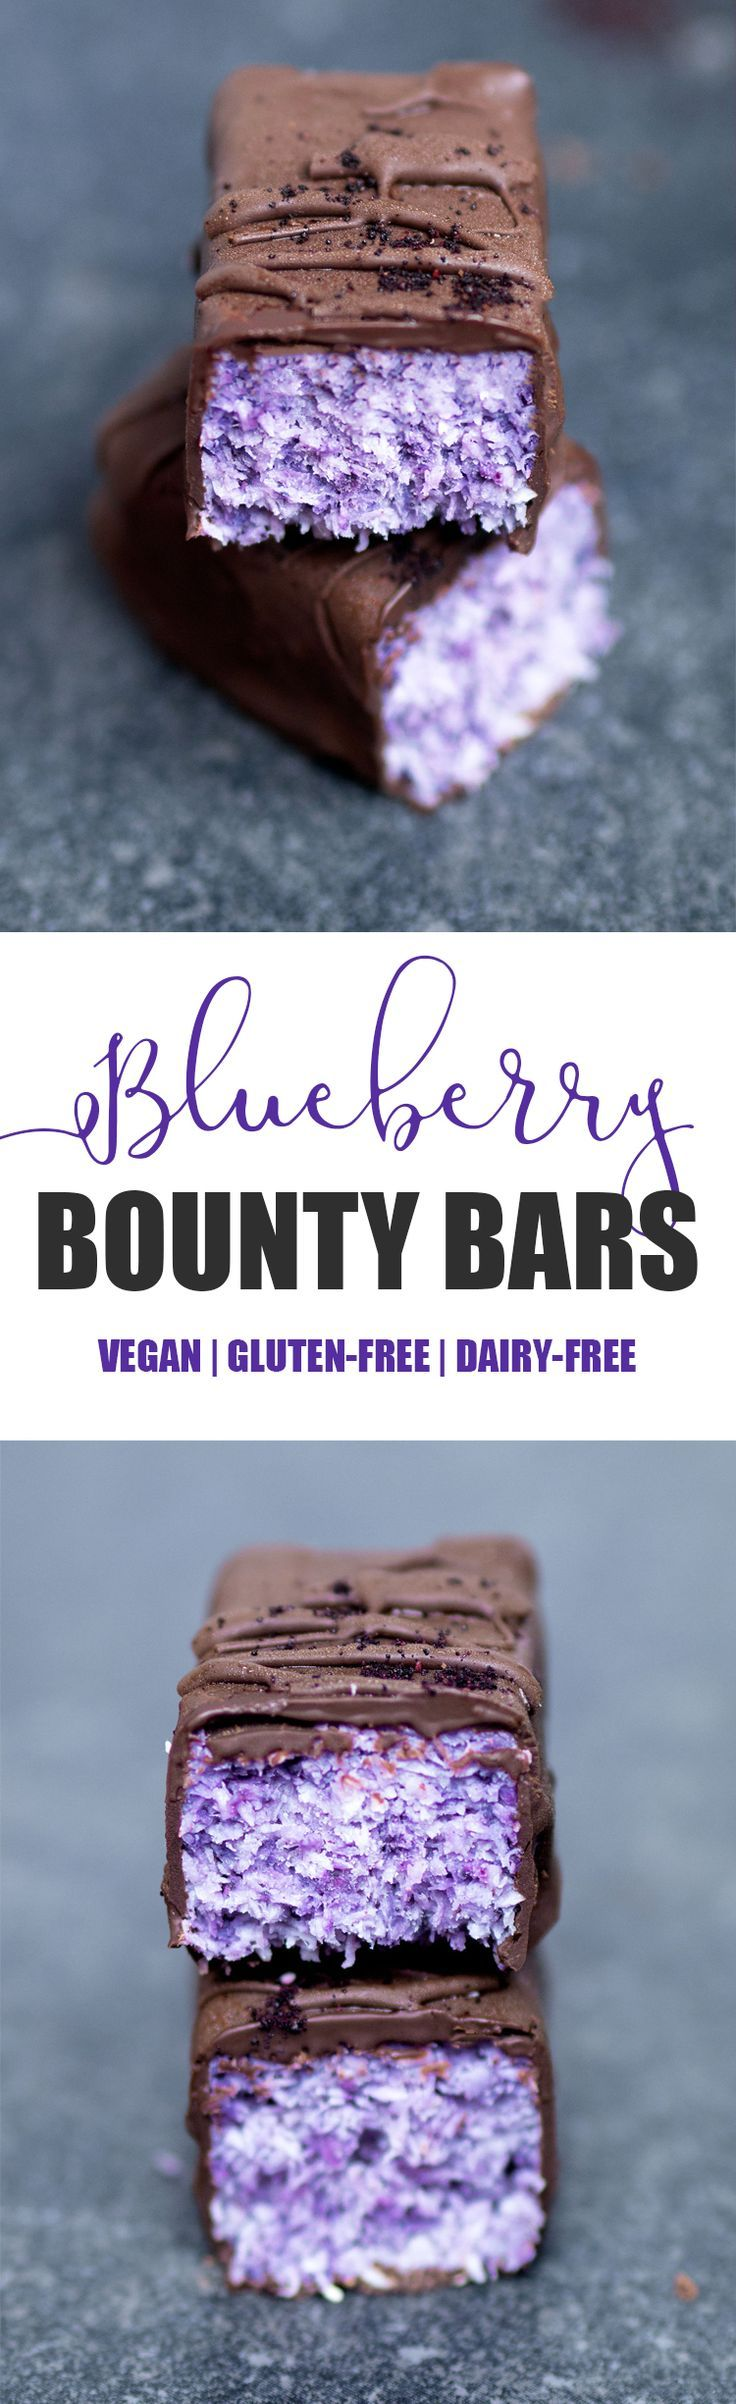 Blueberry Bounty Bars Come and see our new website at bakedcomfortfood.com!